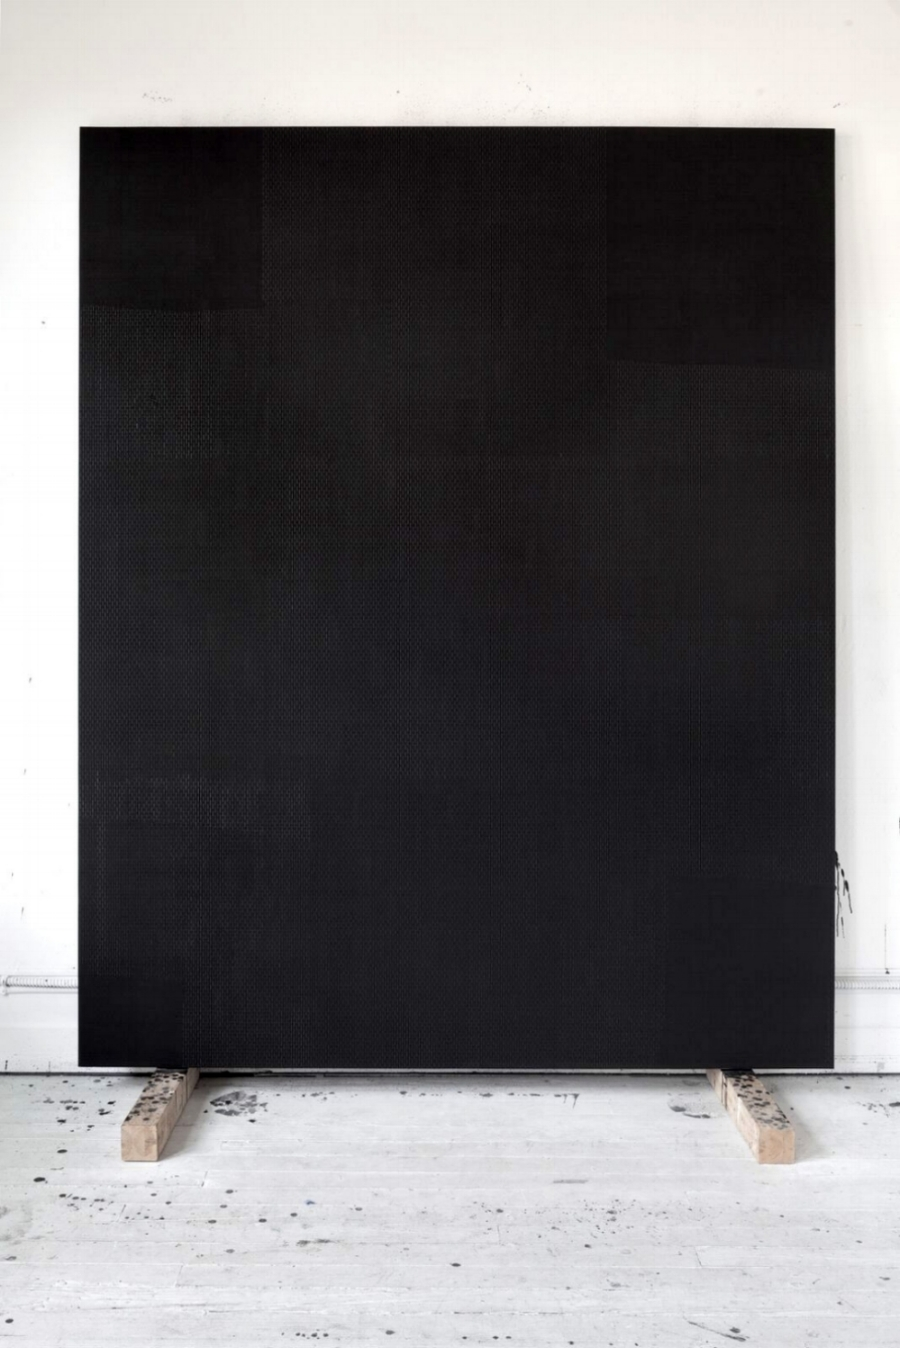 Cruciform, (By Foot, in Spain),   oil, graphite, paster on panel, 96 x 77 inches, 2017